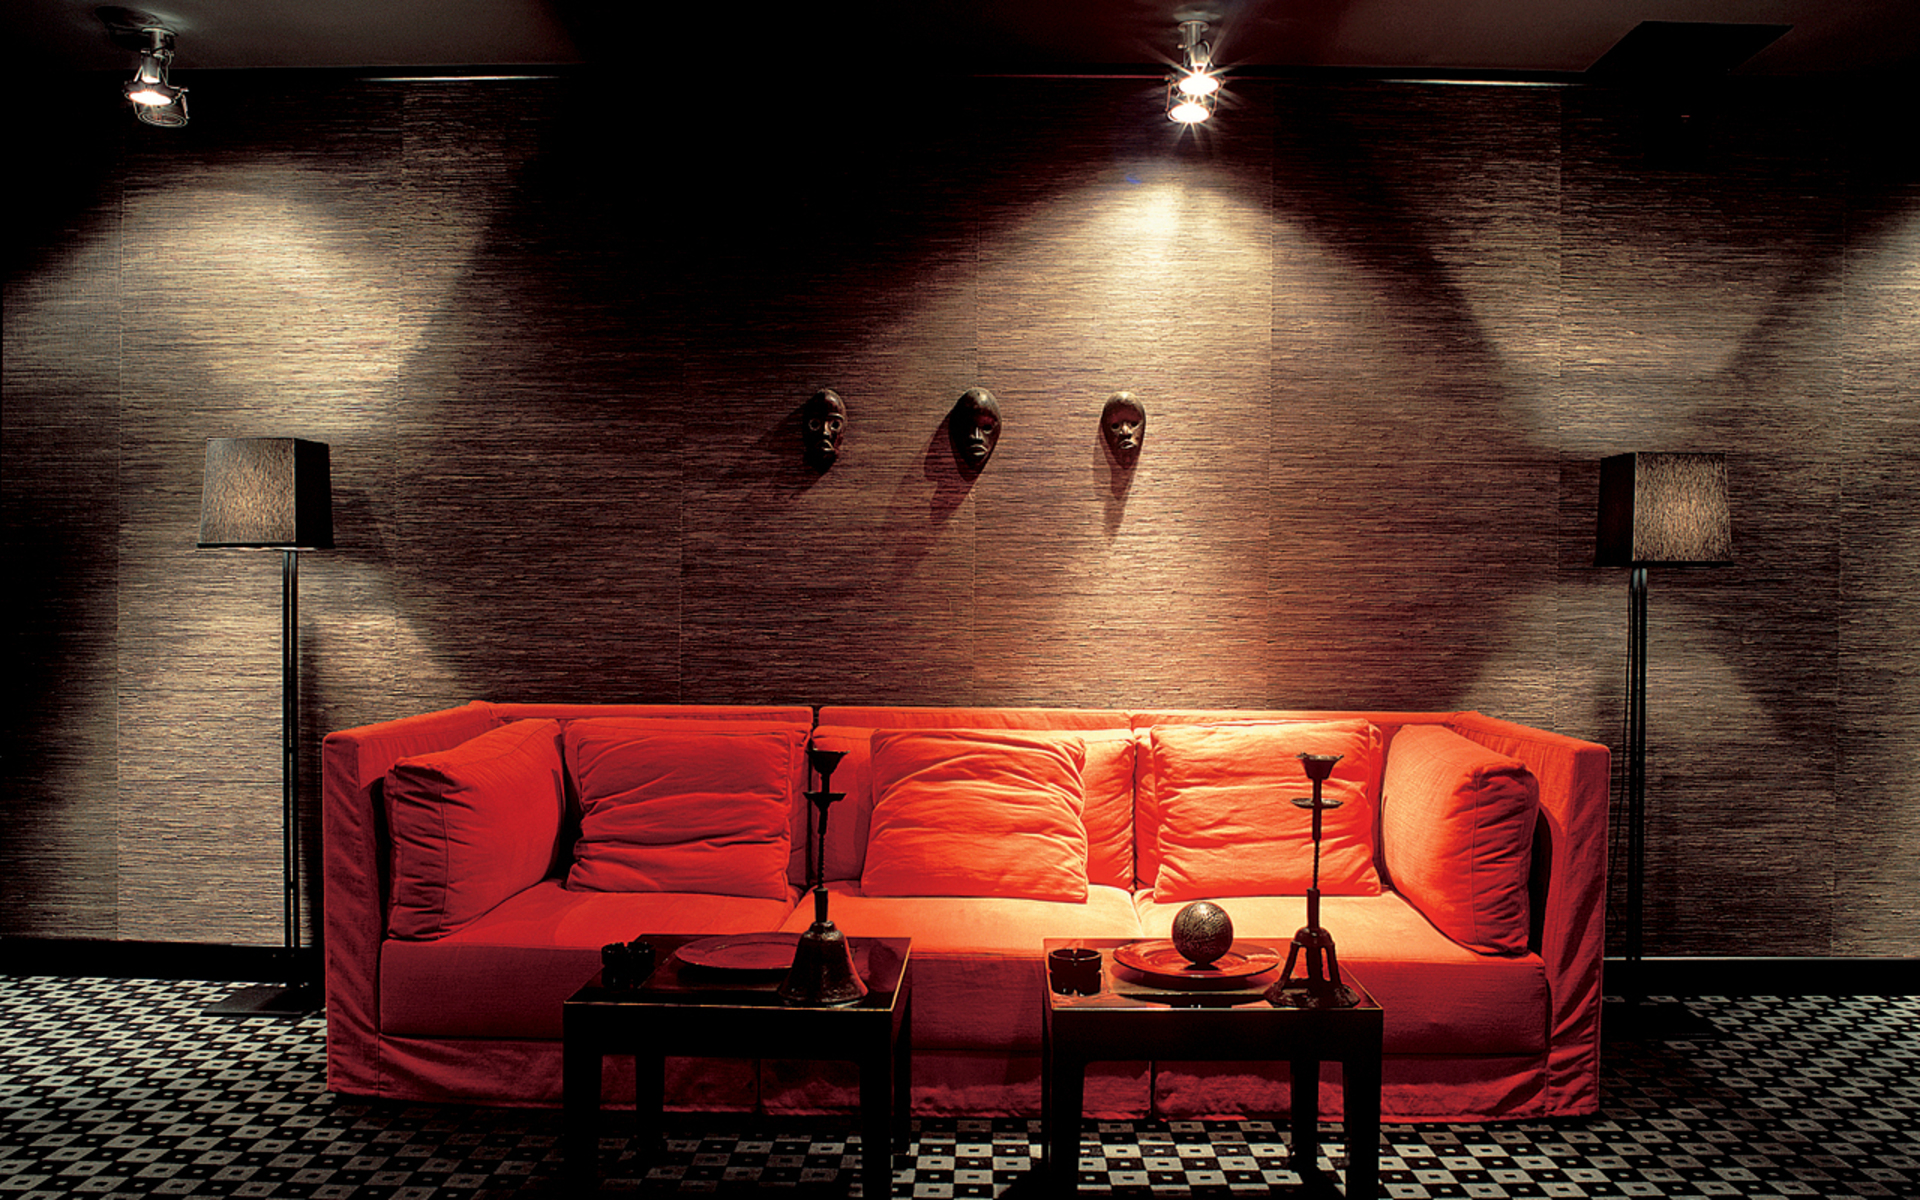 Hd Pics Of Couches : 18 Excellent HD Couch Wallpapers - HDWallSource.com